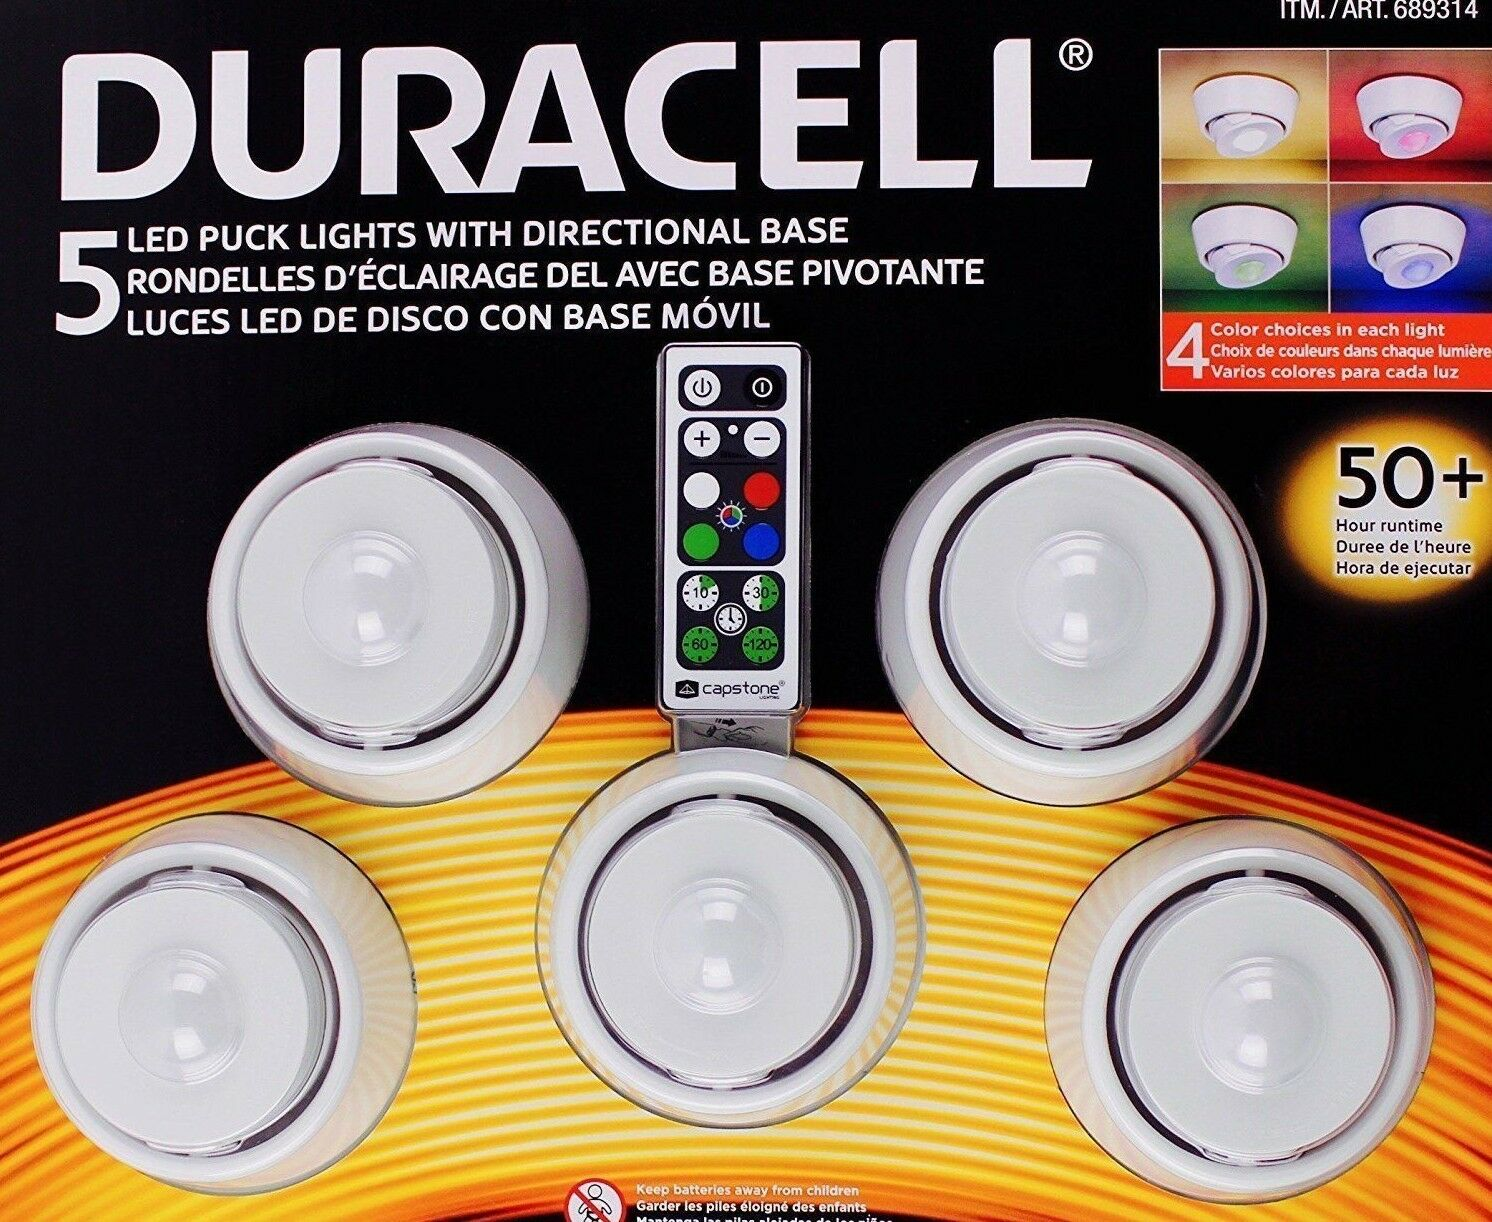 Ordinaire New Duracell LED Puck Lights 5Pk Under Cabinet Lights Color 4 Light Colors  1 Of 2Only 0 Available ...